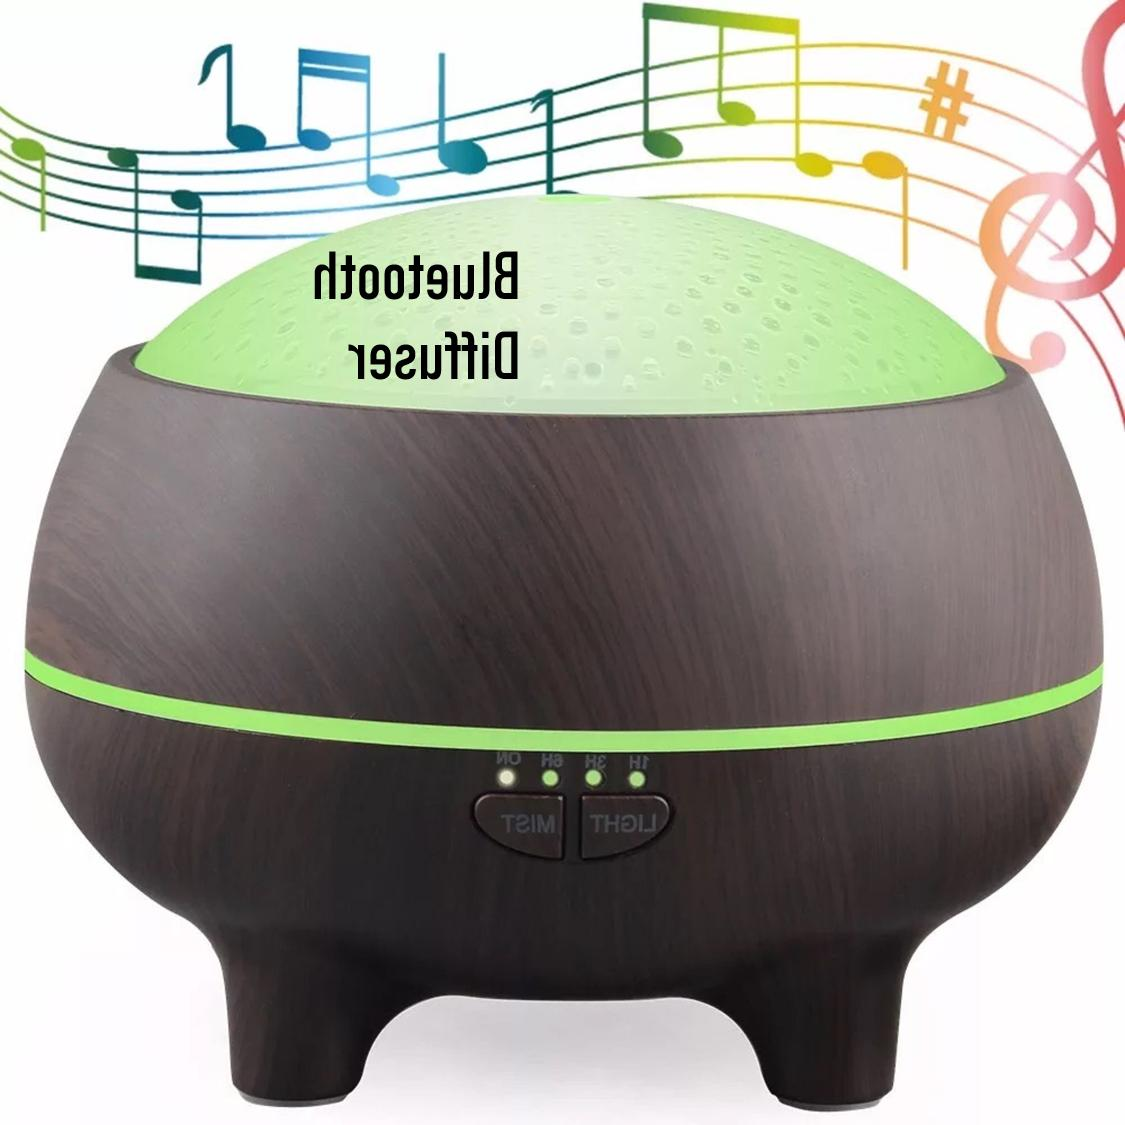 aromatherapy diffuser with bluetooth cool mist humidifier